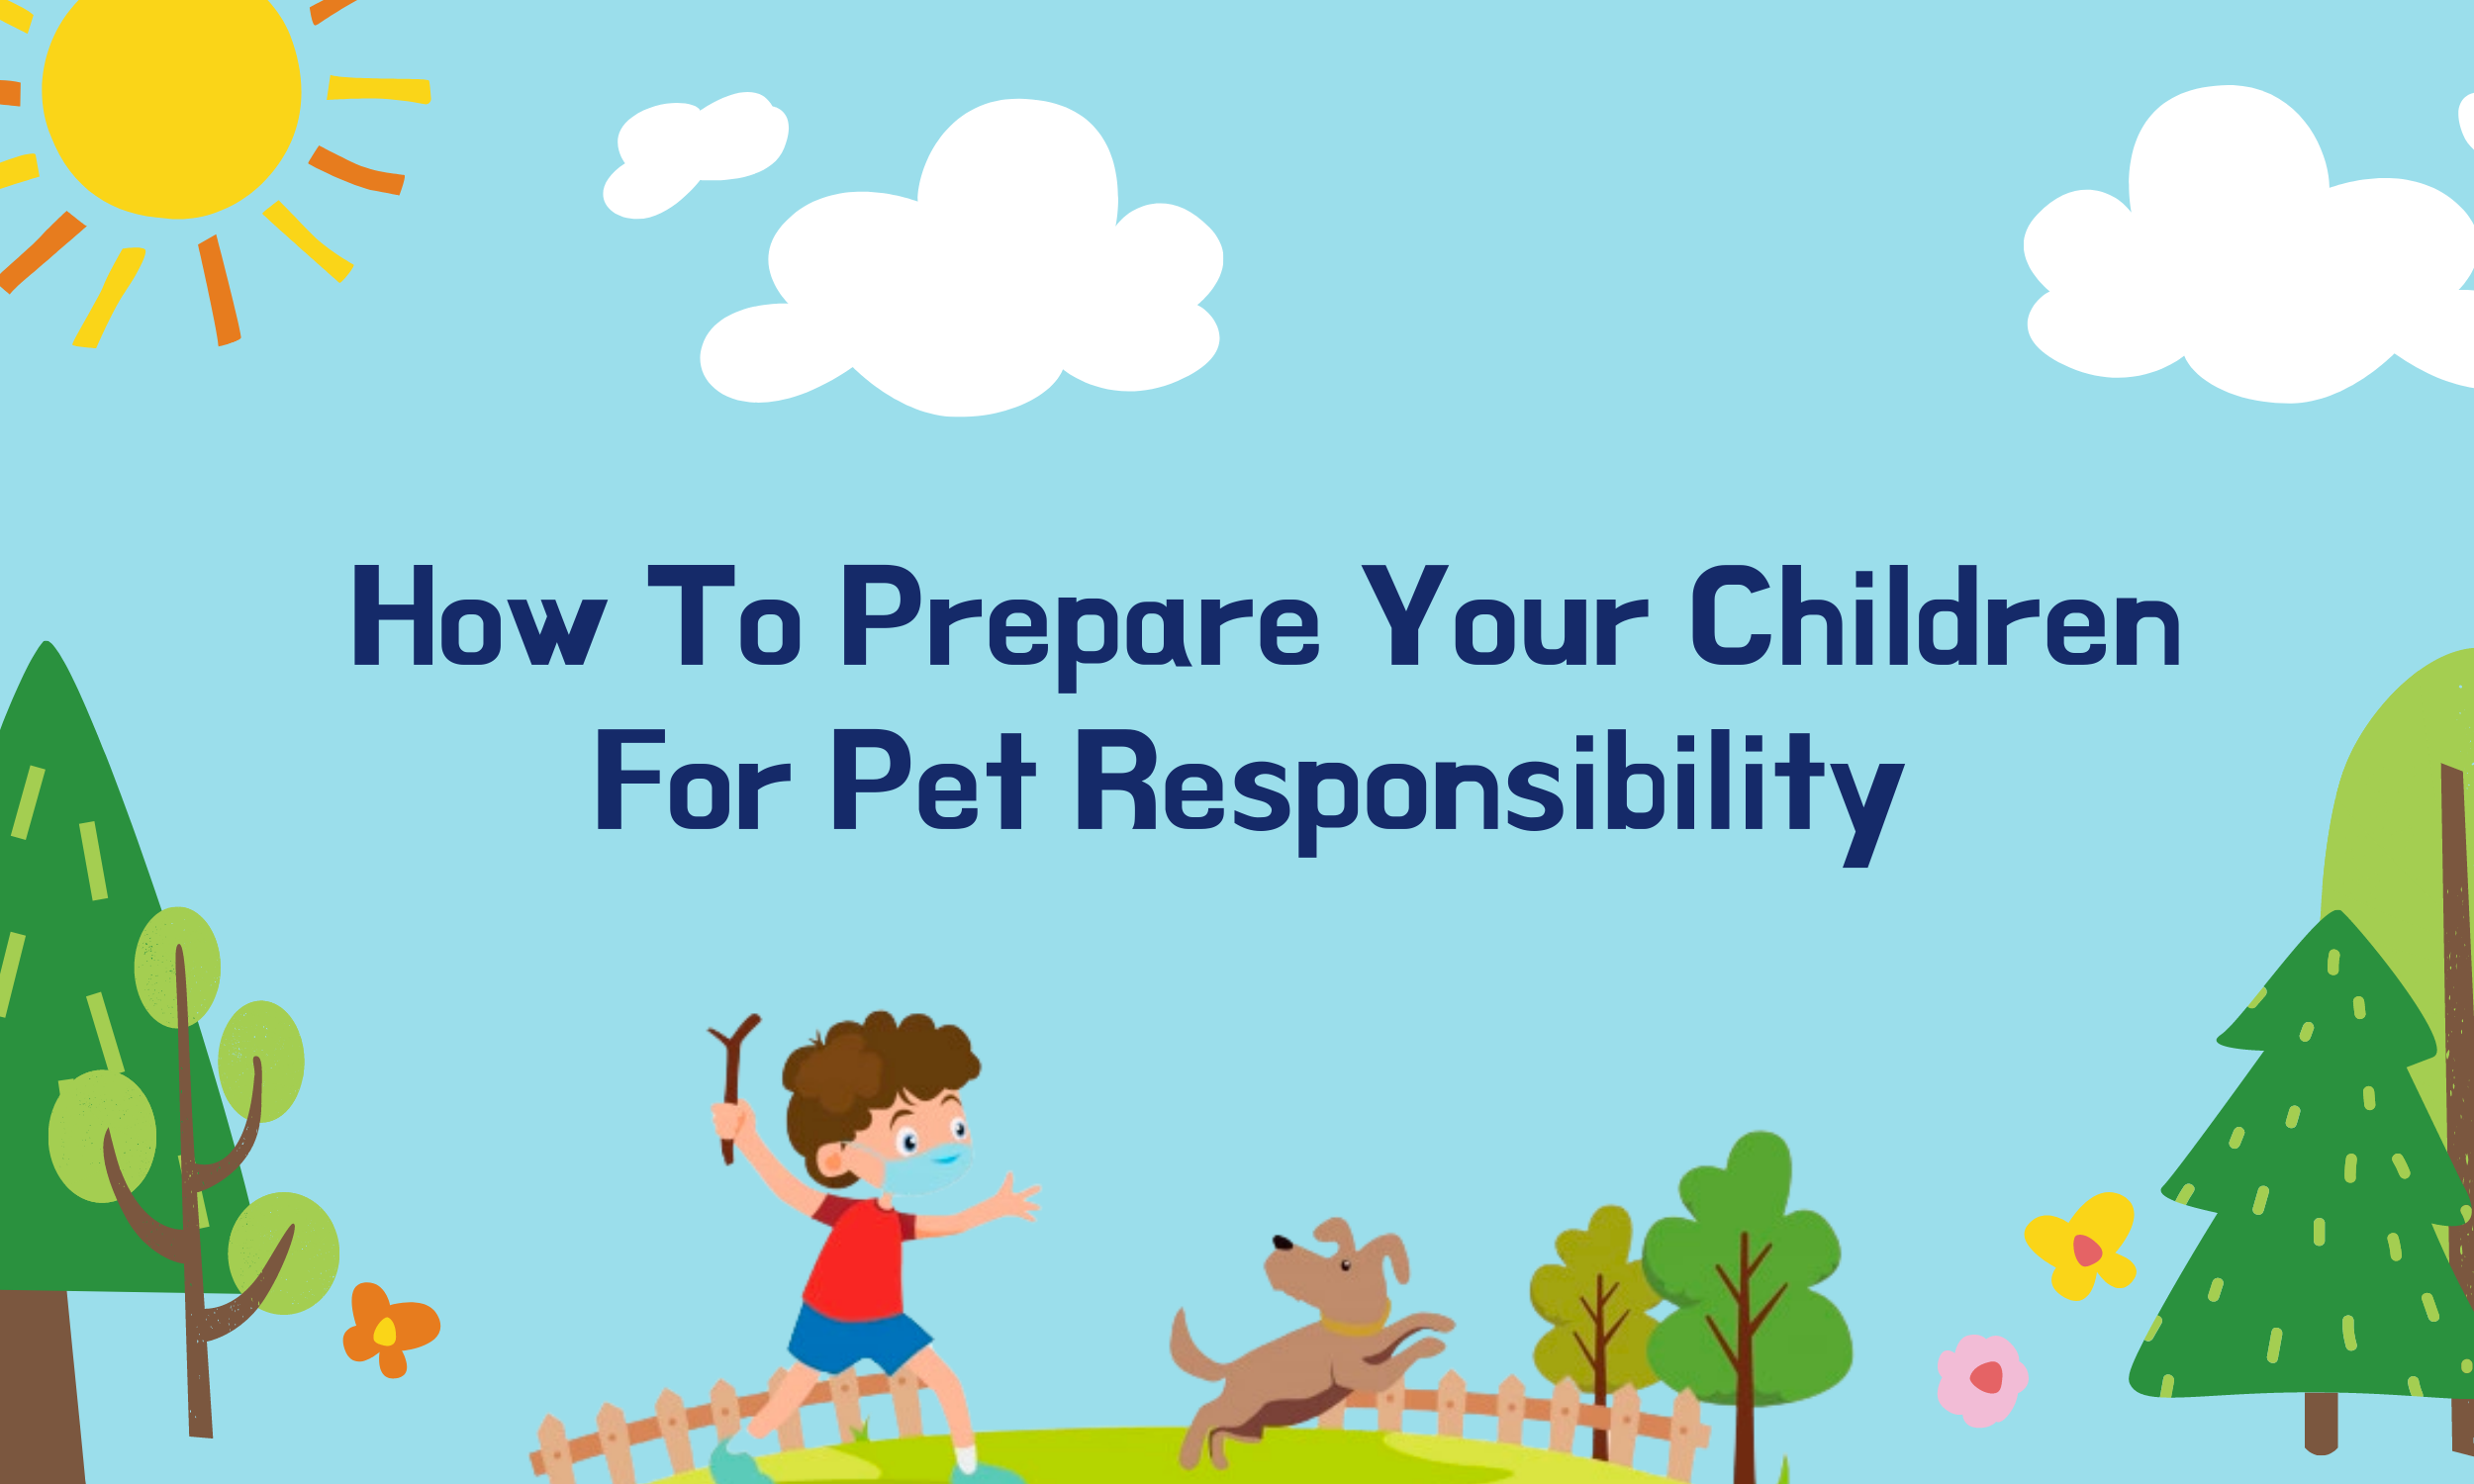 How-To-Prepare-Your-Children-For-Pet-Responsibility